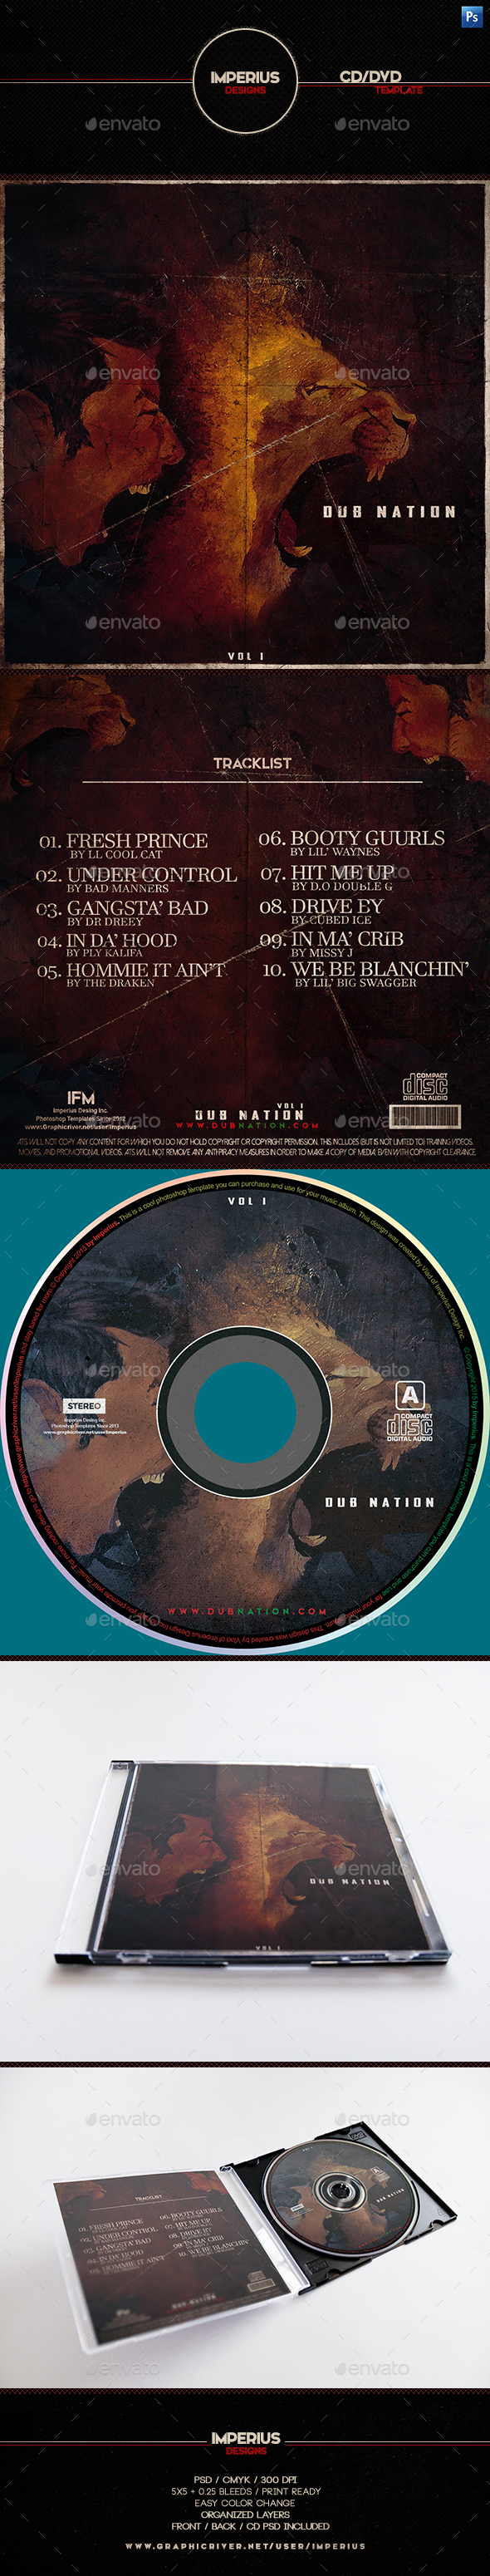 Dub Nation V1 CD/DVD Cover - CD & DVD Artwork Print Templates